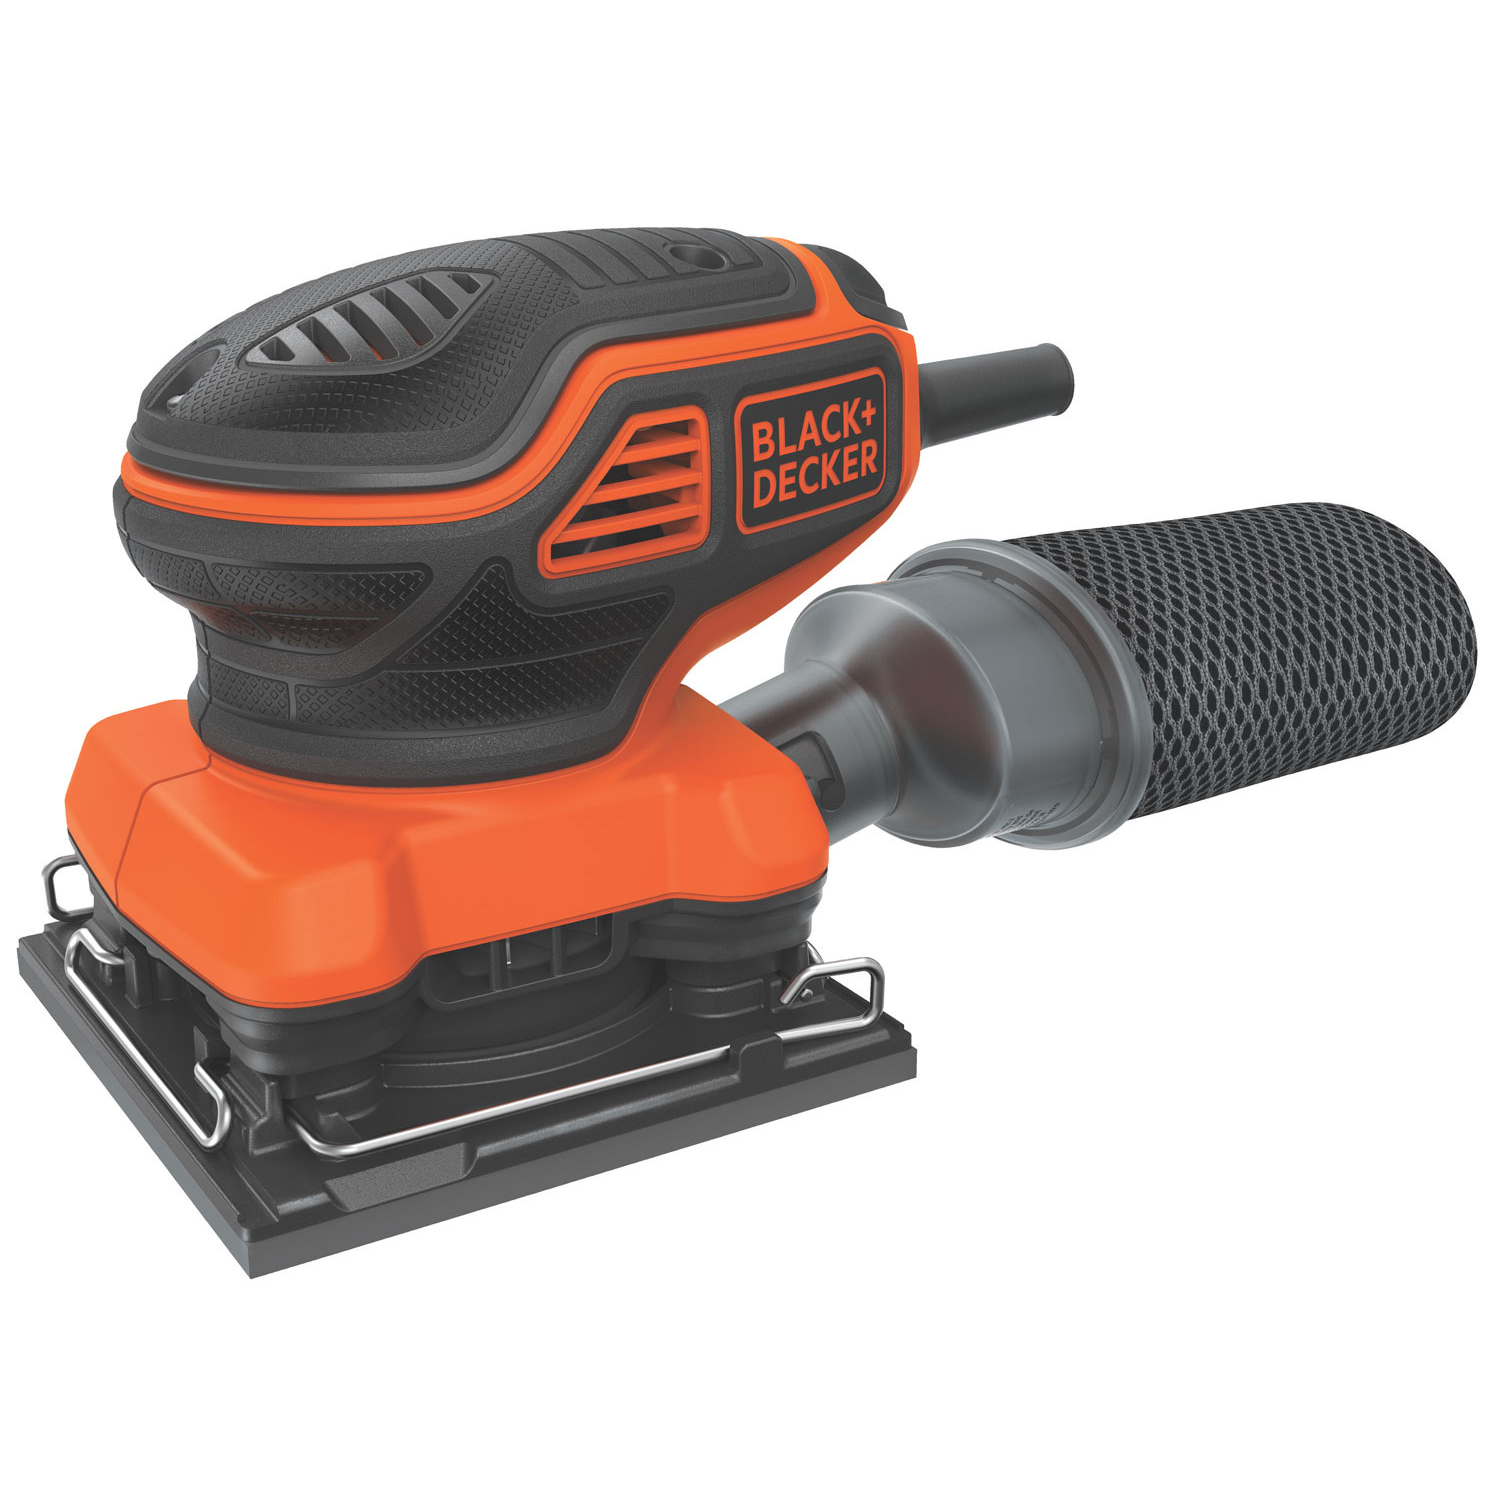 BLACK+DECKER 2-Amp 1/4 Sheet Orbital Sander, Bdeqs300